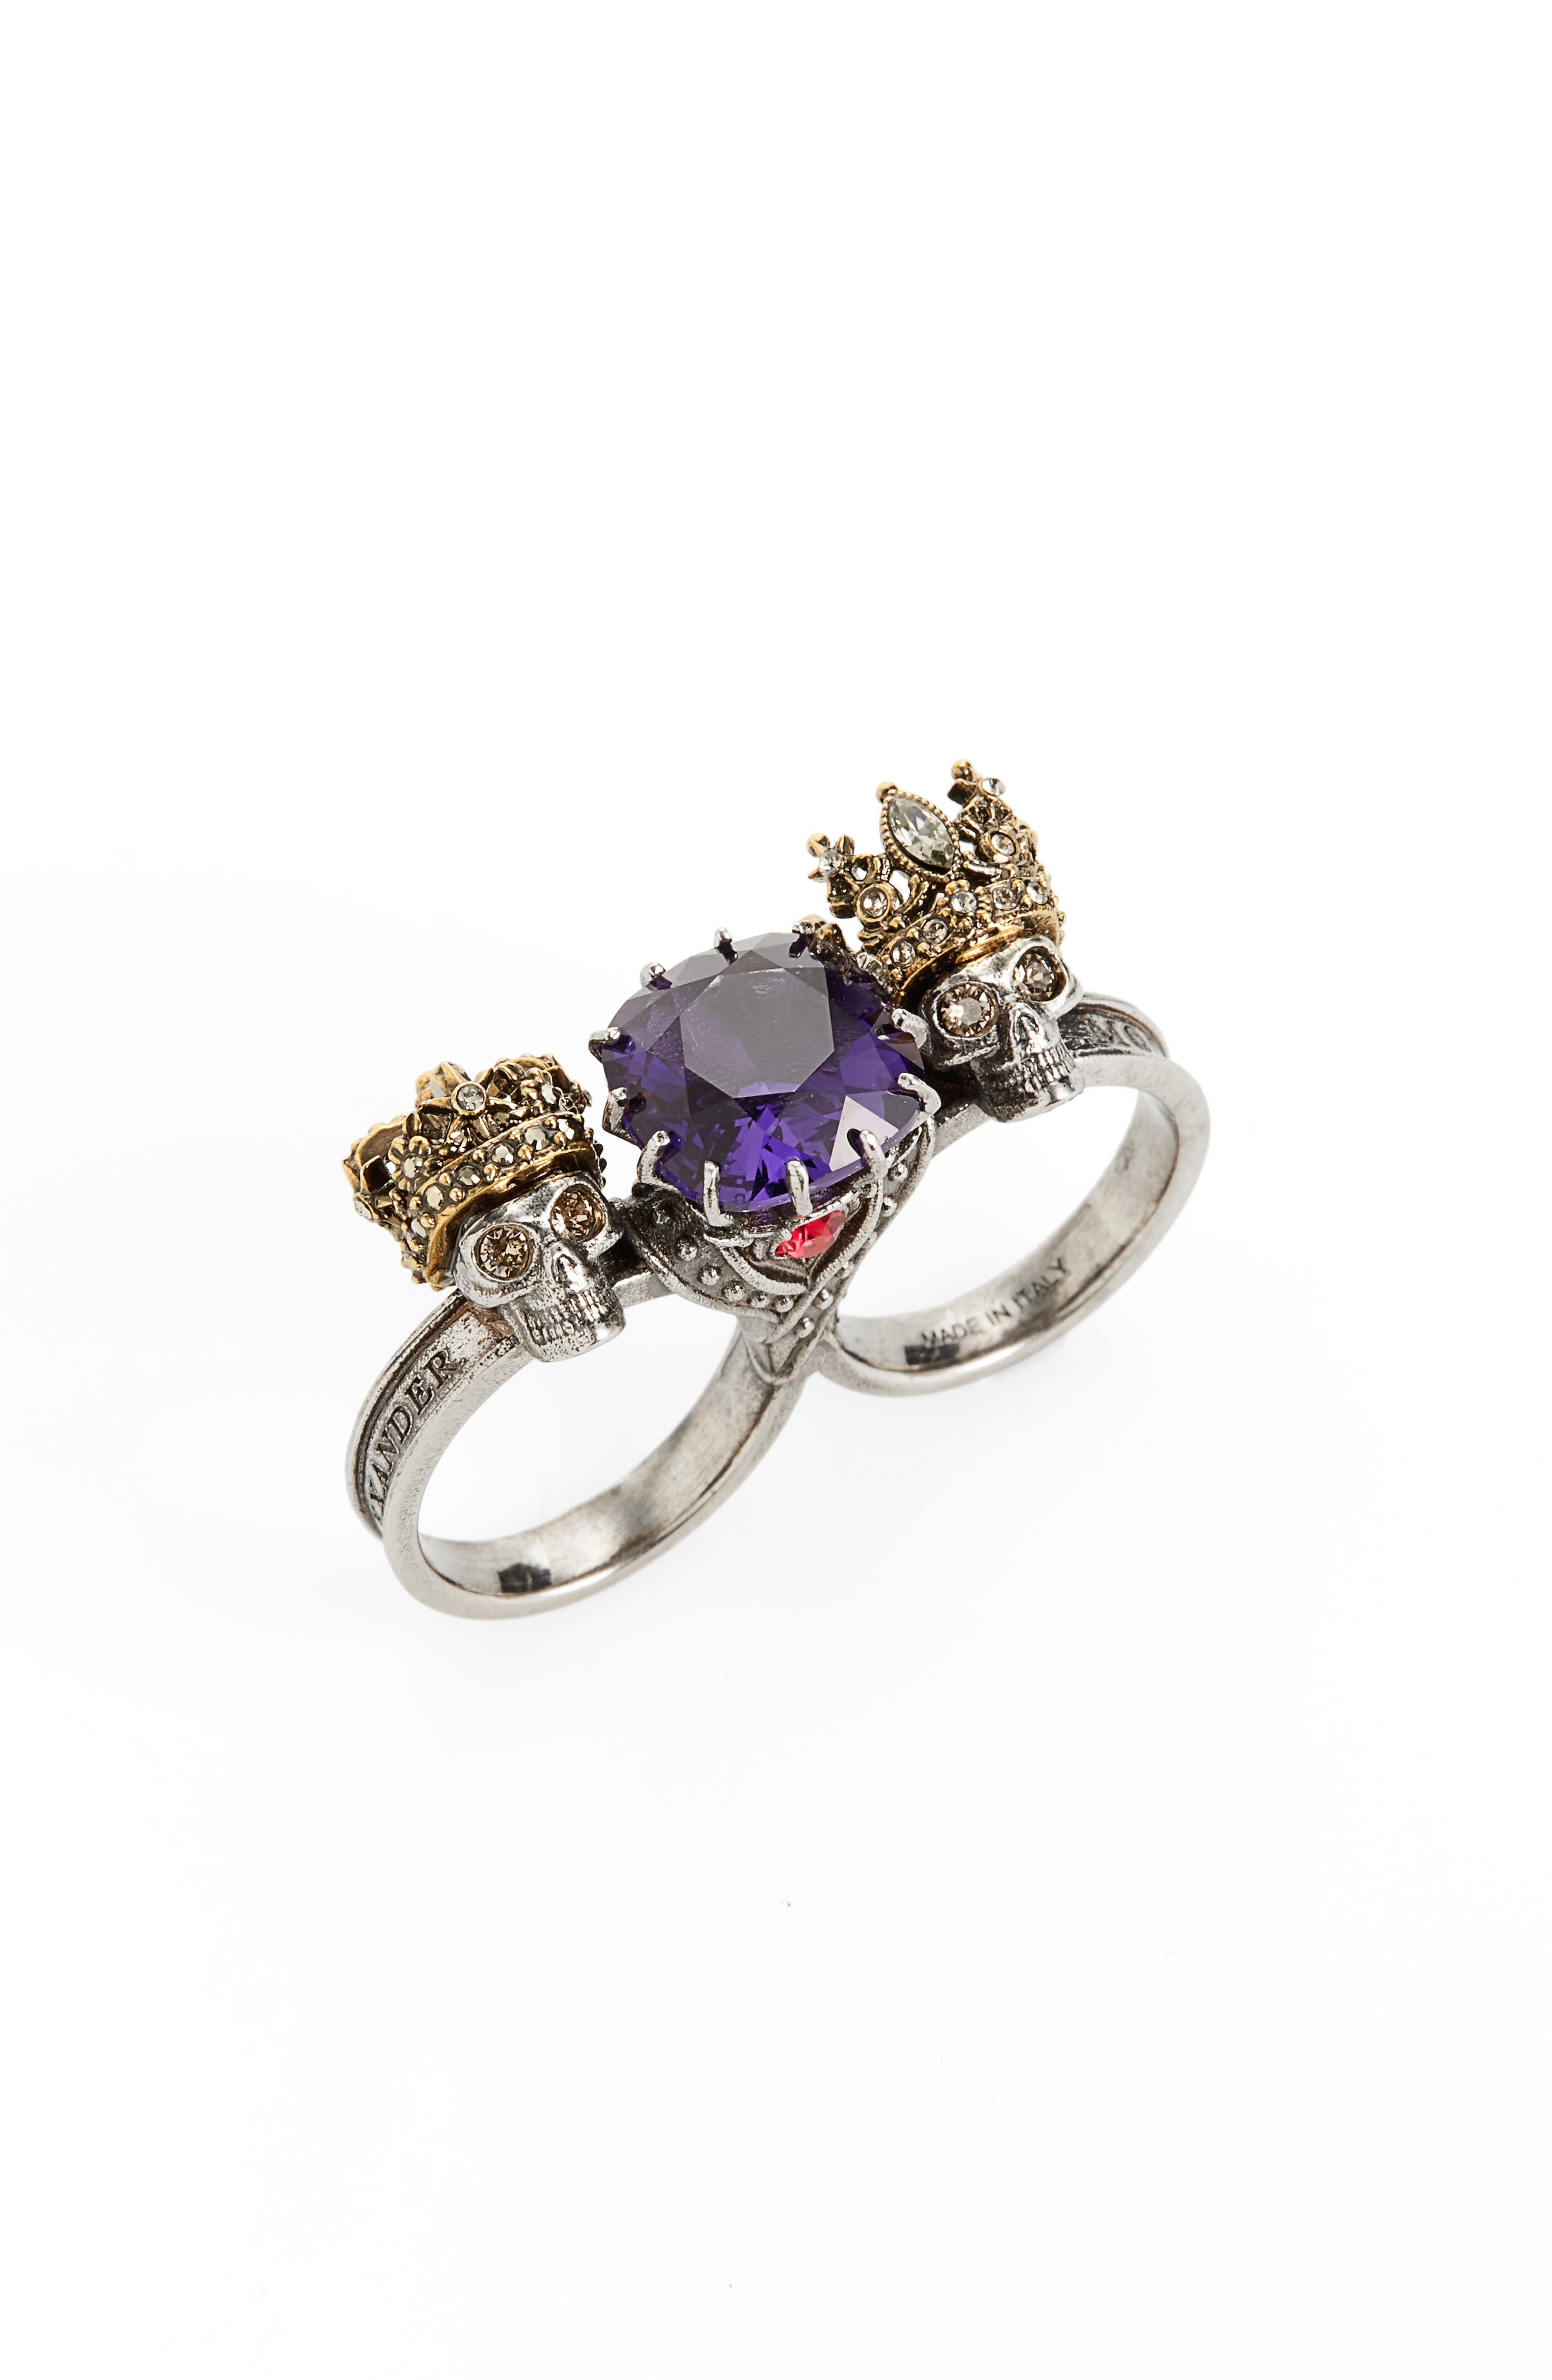 Main Image - Alexander McQueen Jewel Double Ring